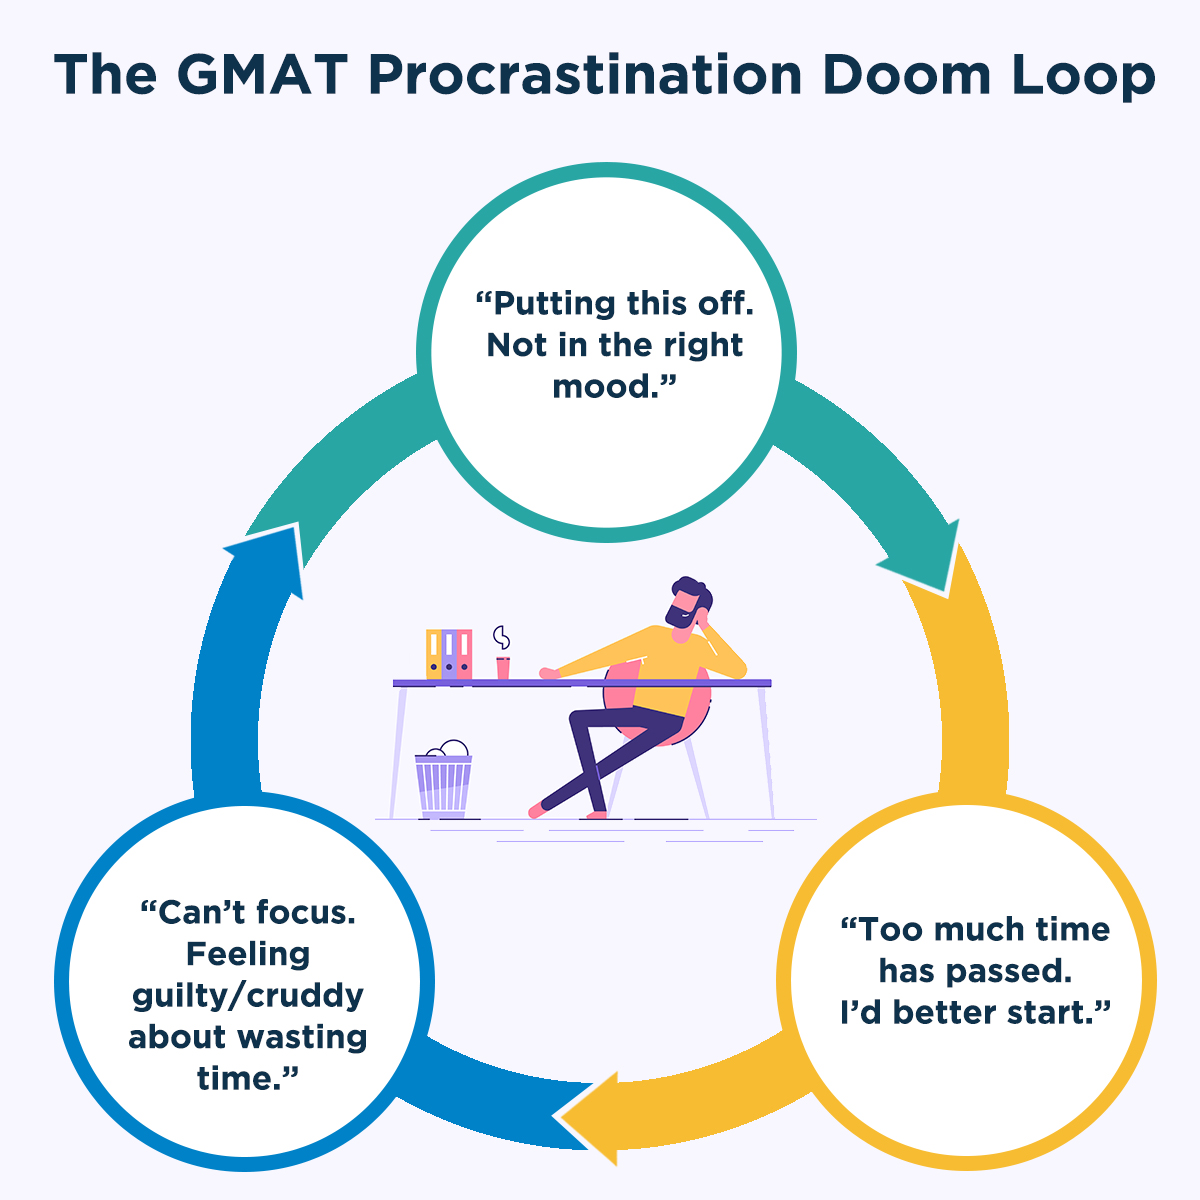 how to focus on gmat preparation and overcome procrastination